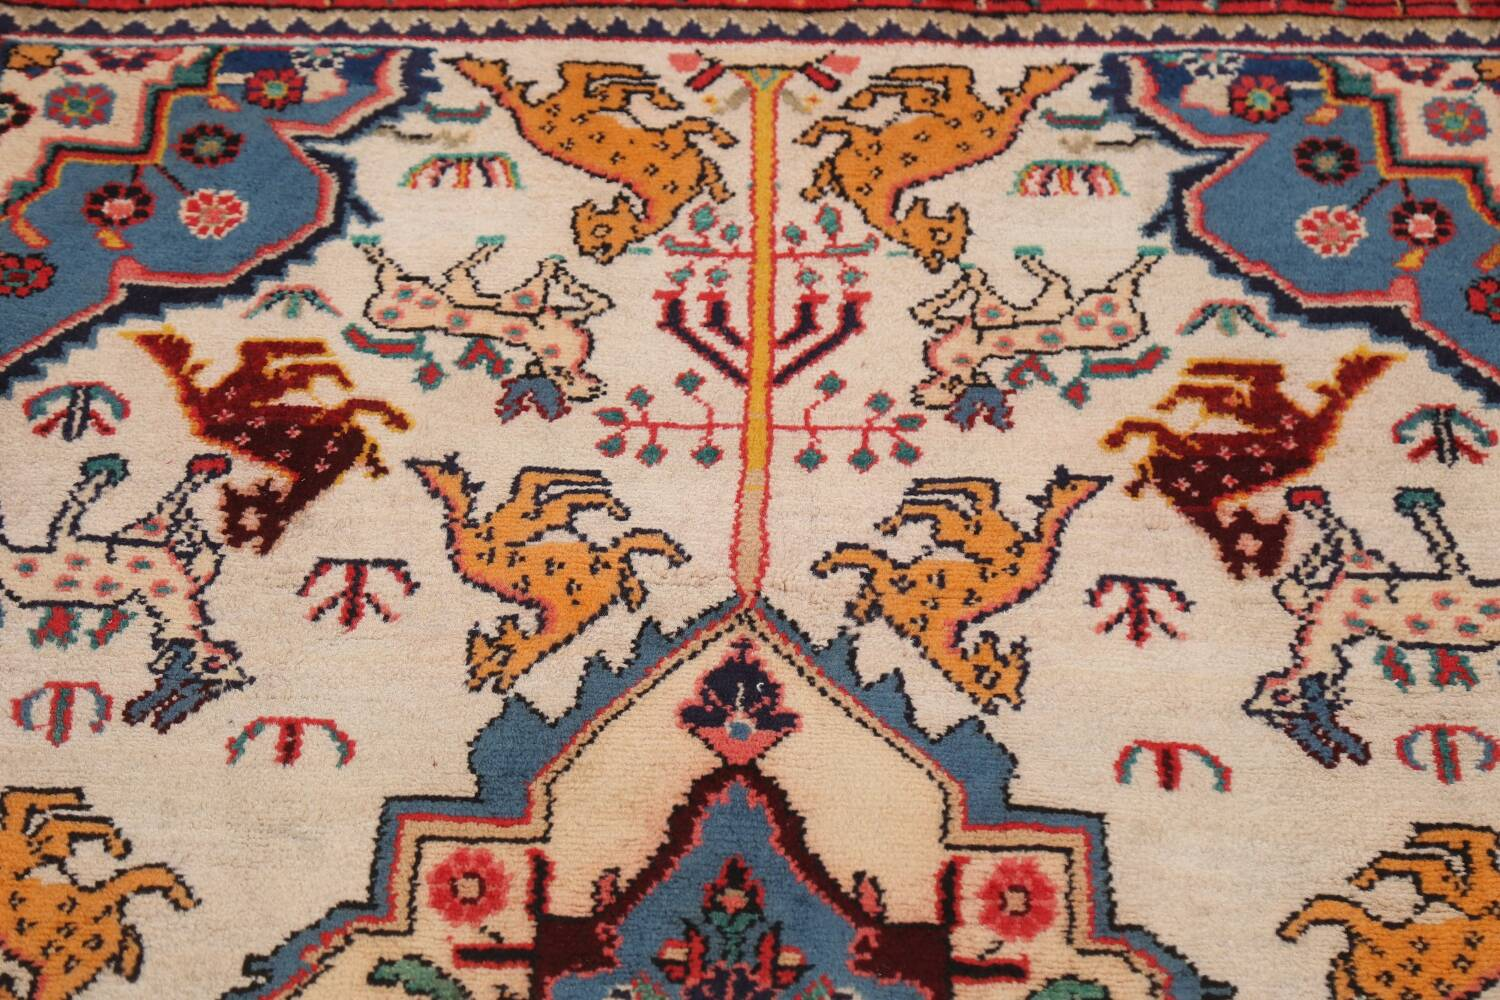 Animal Pictorial Vegetable Dye Senneh Persian Area Rug 3x5 image 10